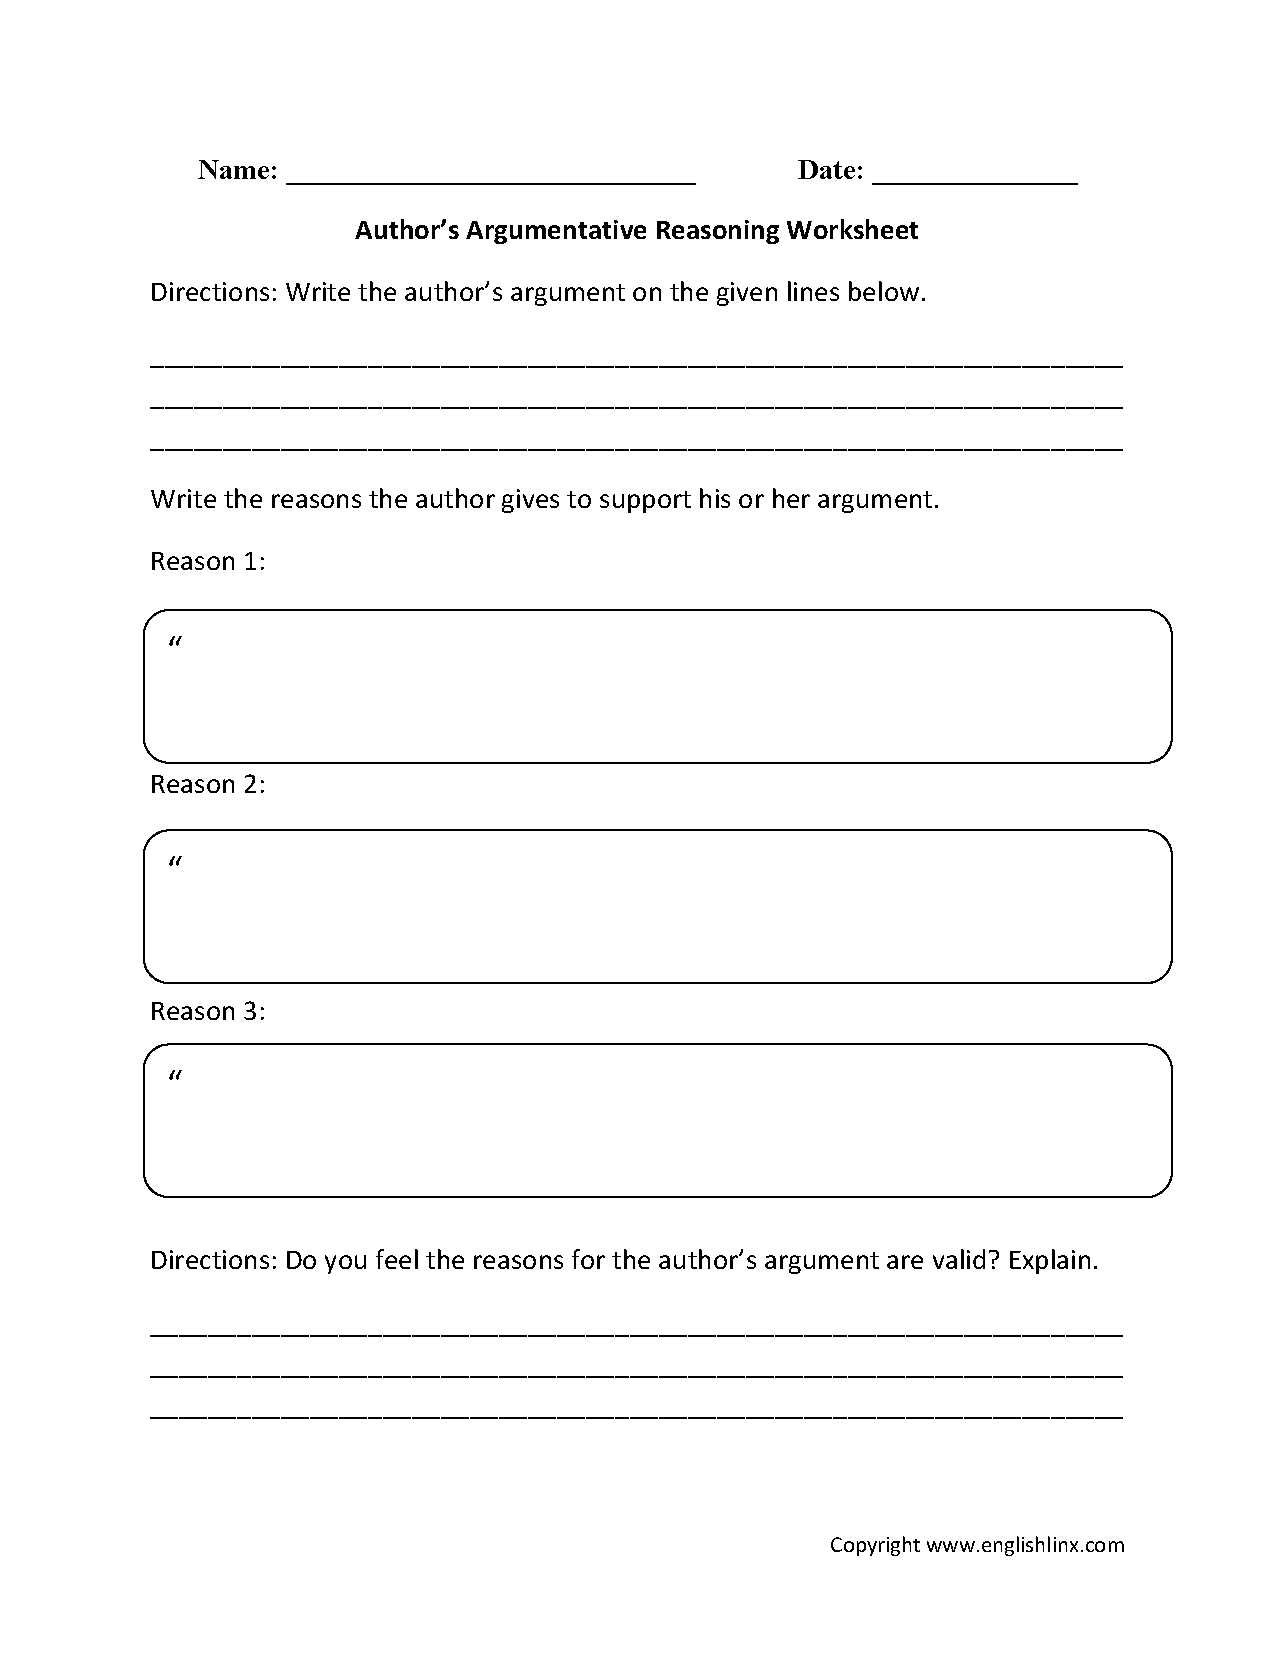 Free Worksheet Easy Reading Comprehension Worksheets englishlinx com reading comprehension worksheets worksheets